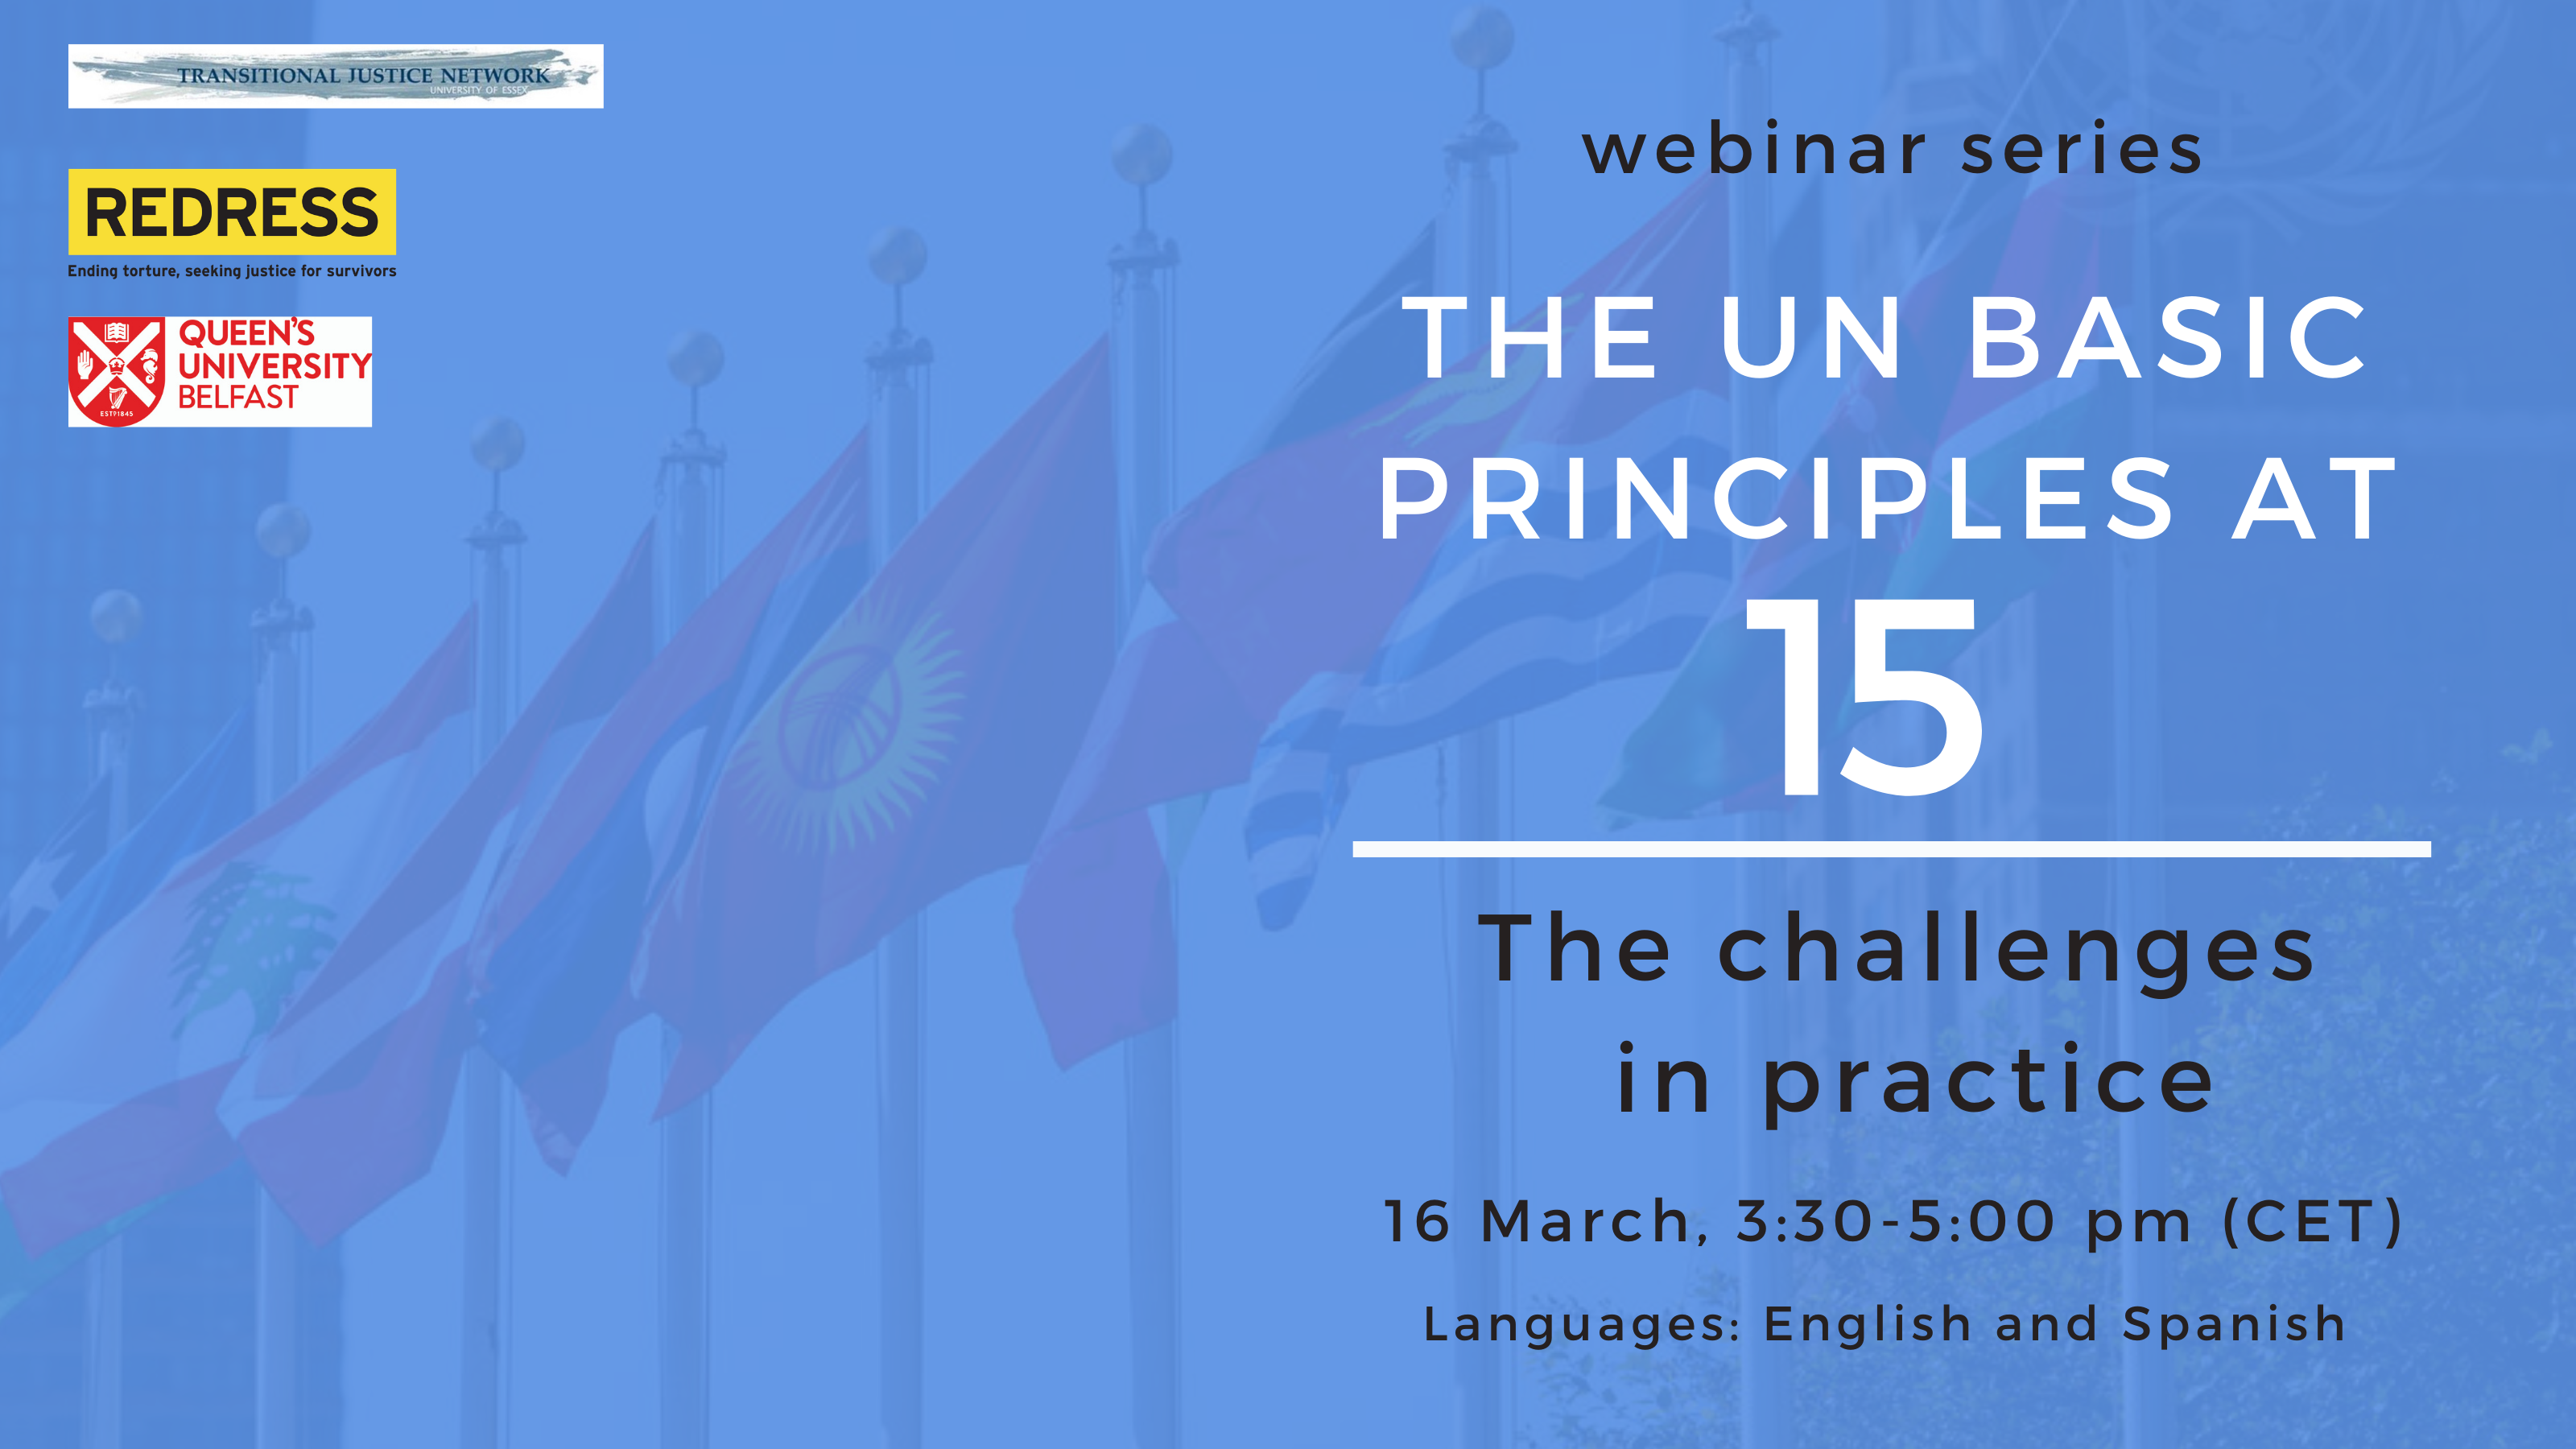 Webinar: The UN Basic Principles at 15: The Challenges in Practice